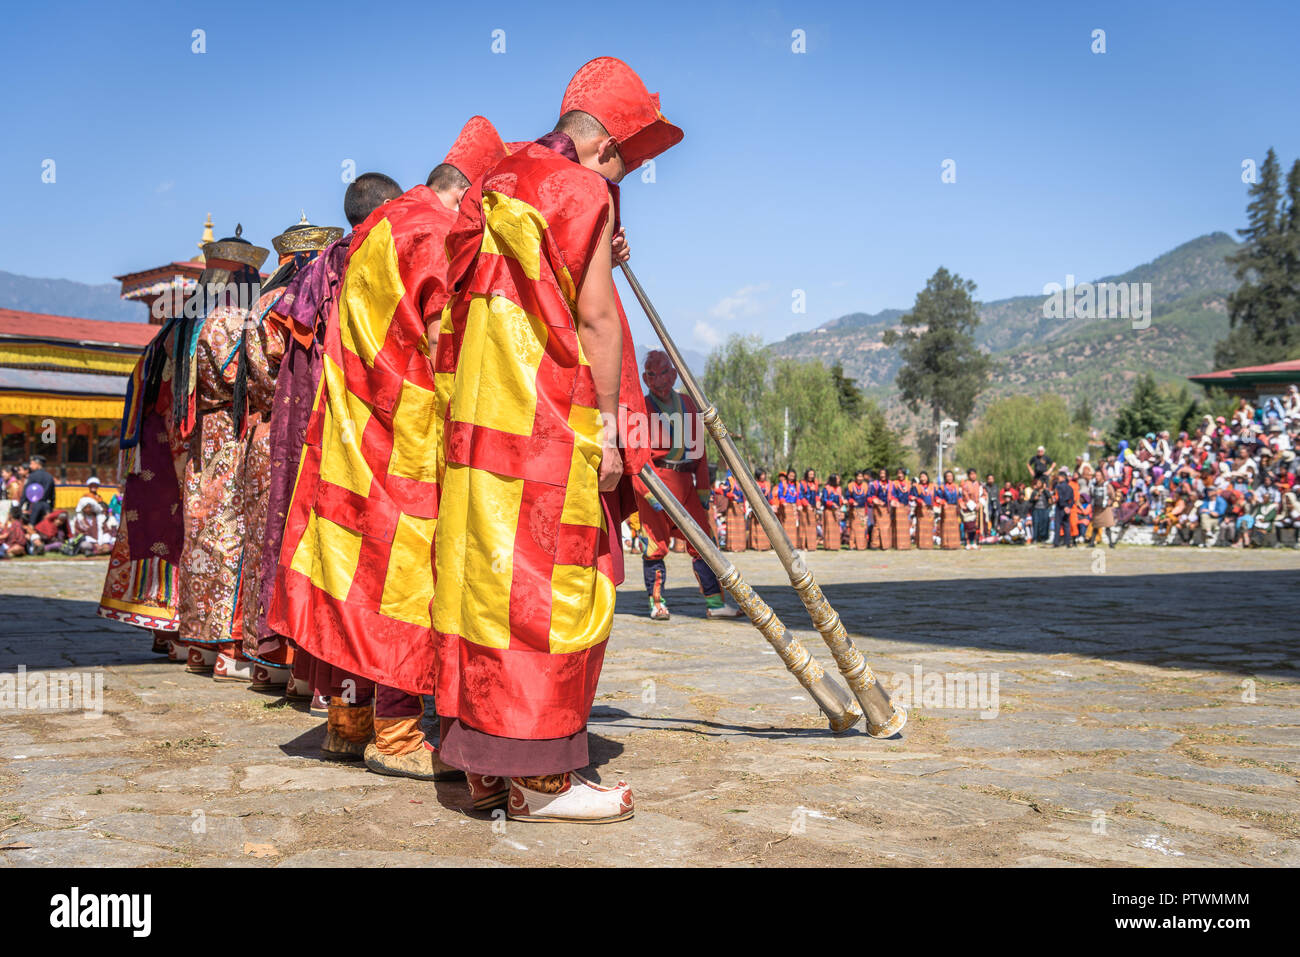 Monks making music with trumpets for colorful mask dance at yearly Paro Tsechu festival in Bhutan - Stock Image